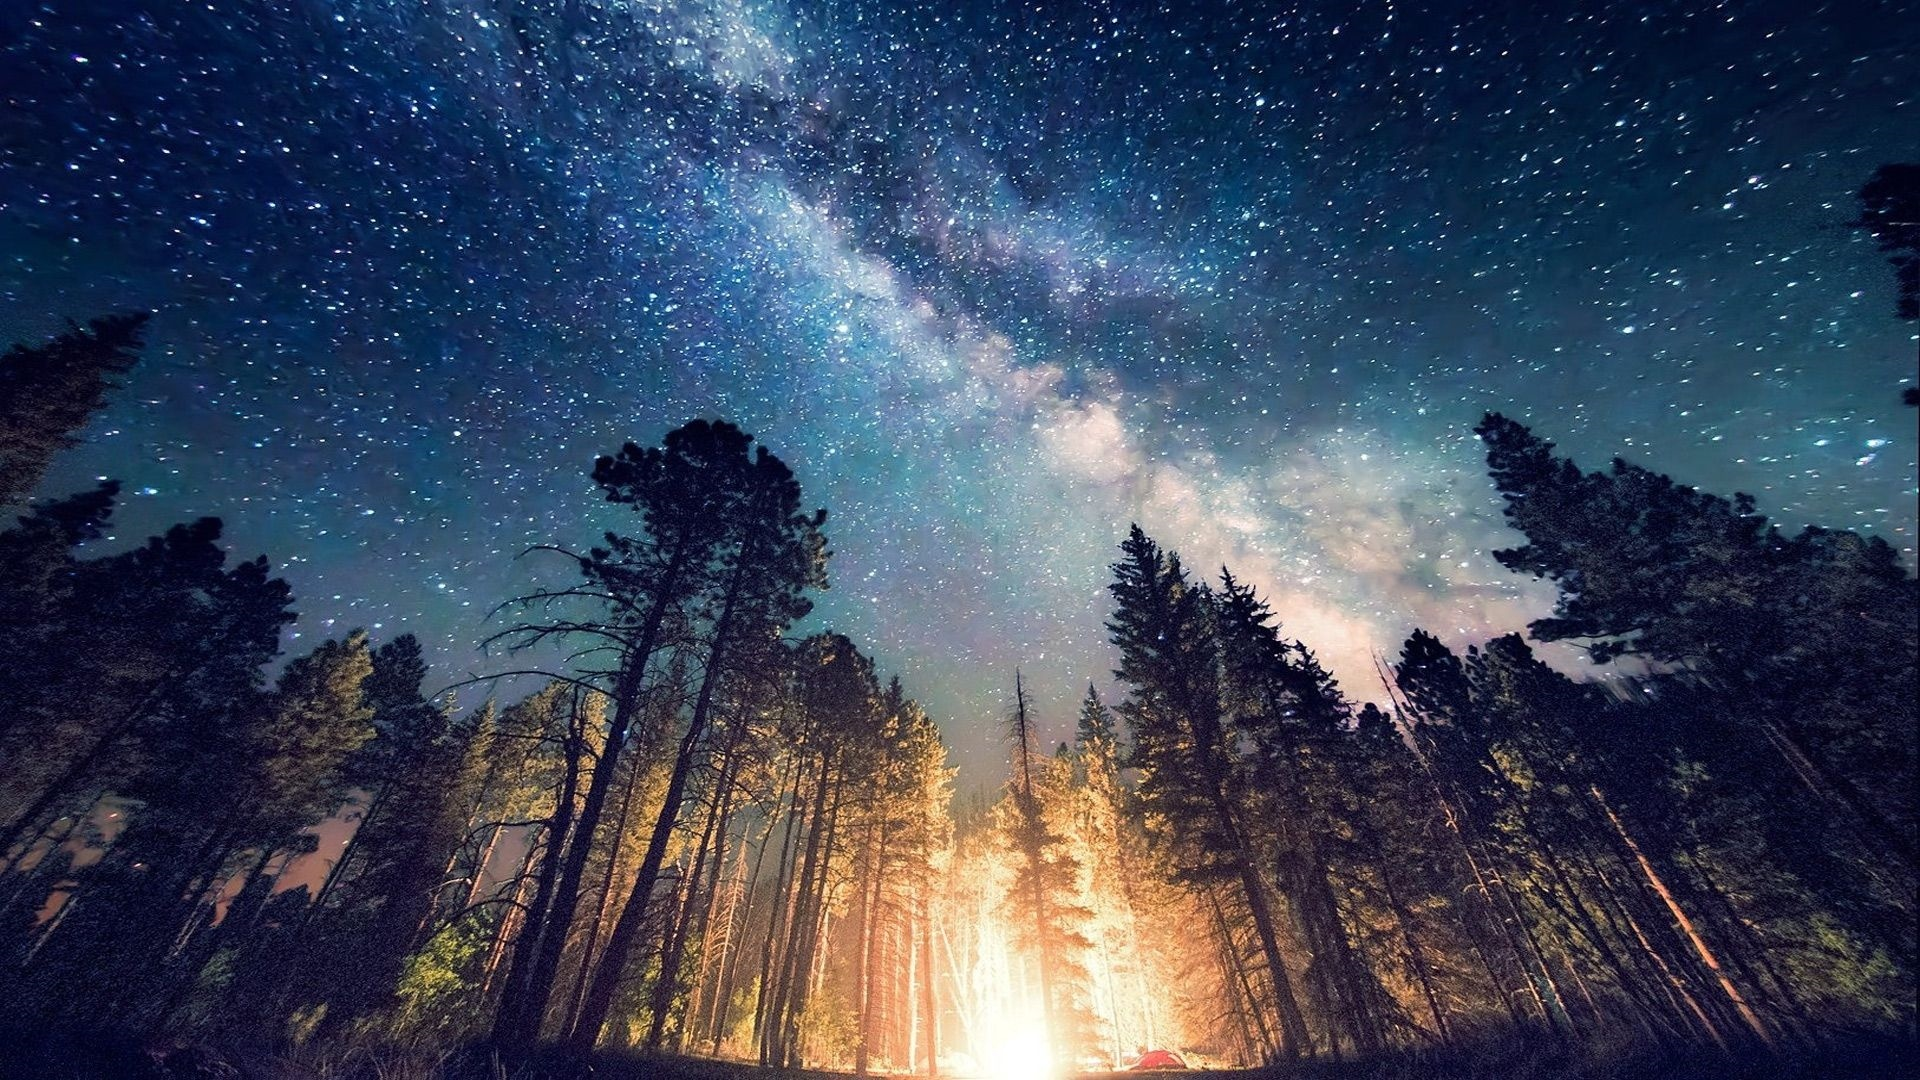 Tree And Space Wallpaper